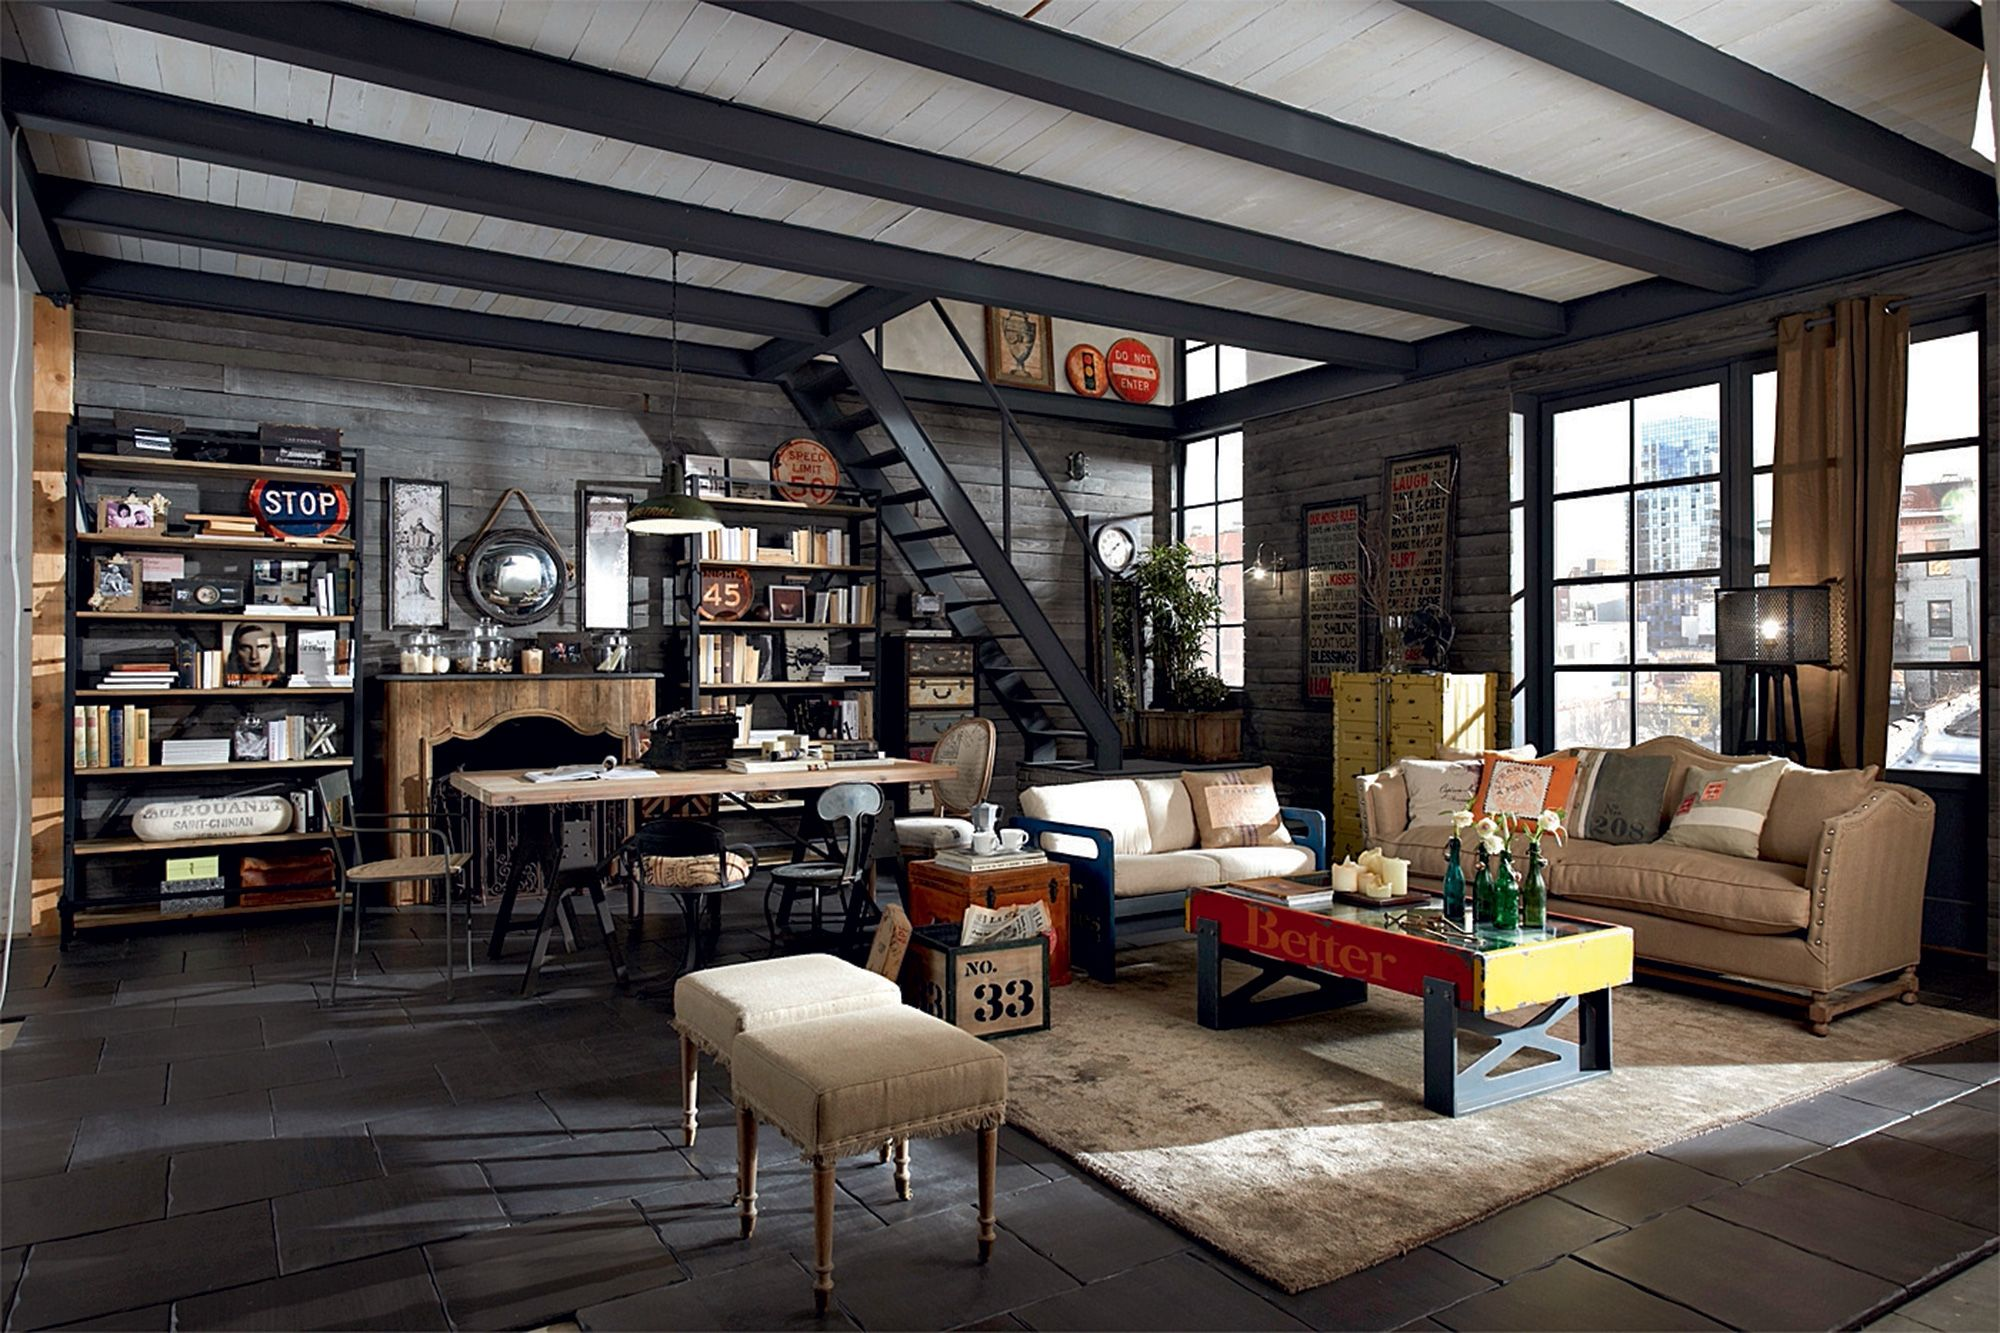 Country, vintage, industrial, loft, urban, shabby chic